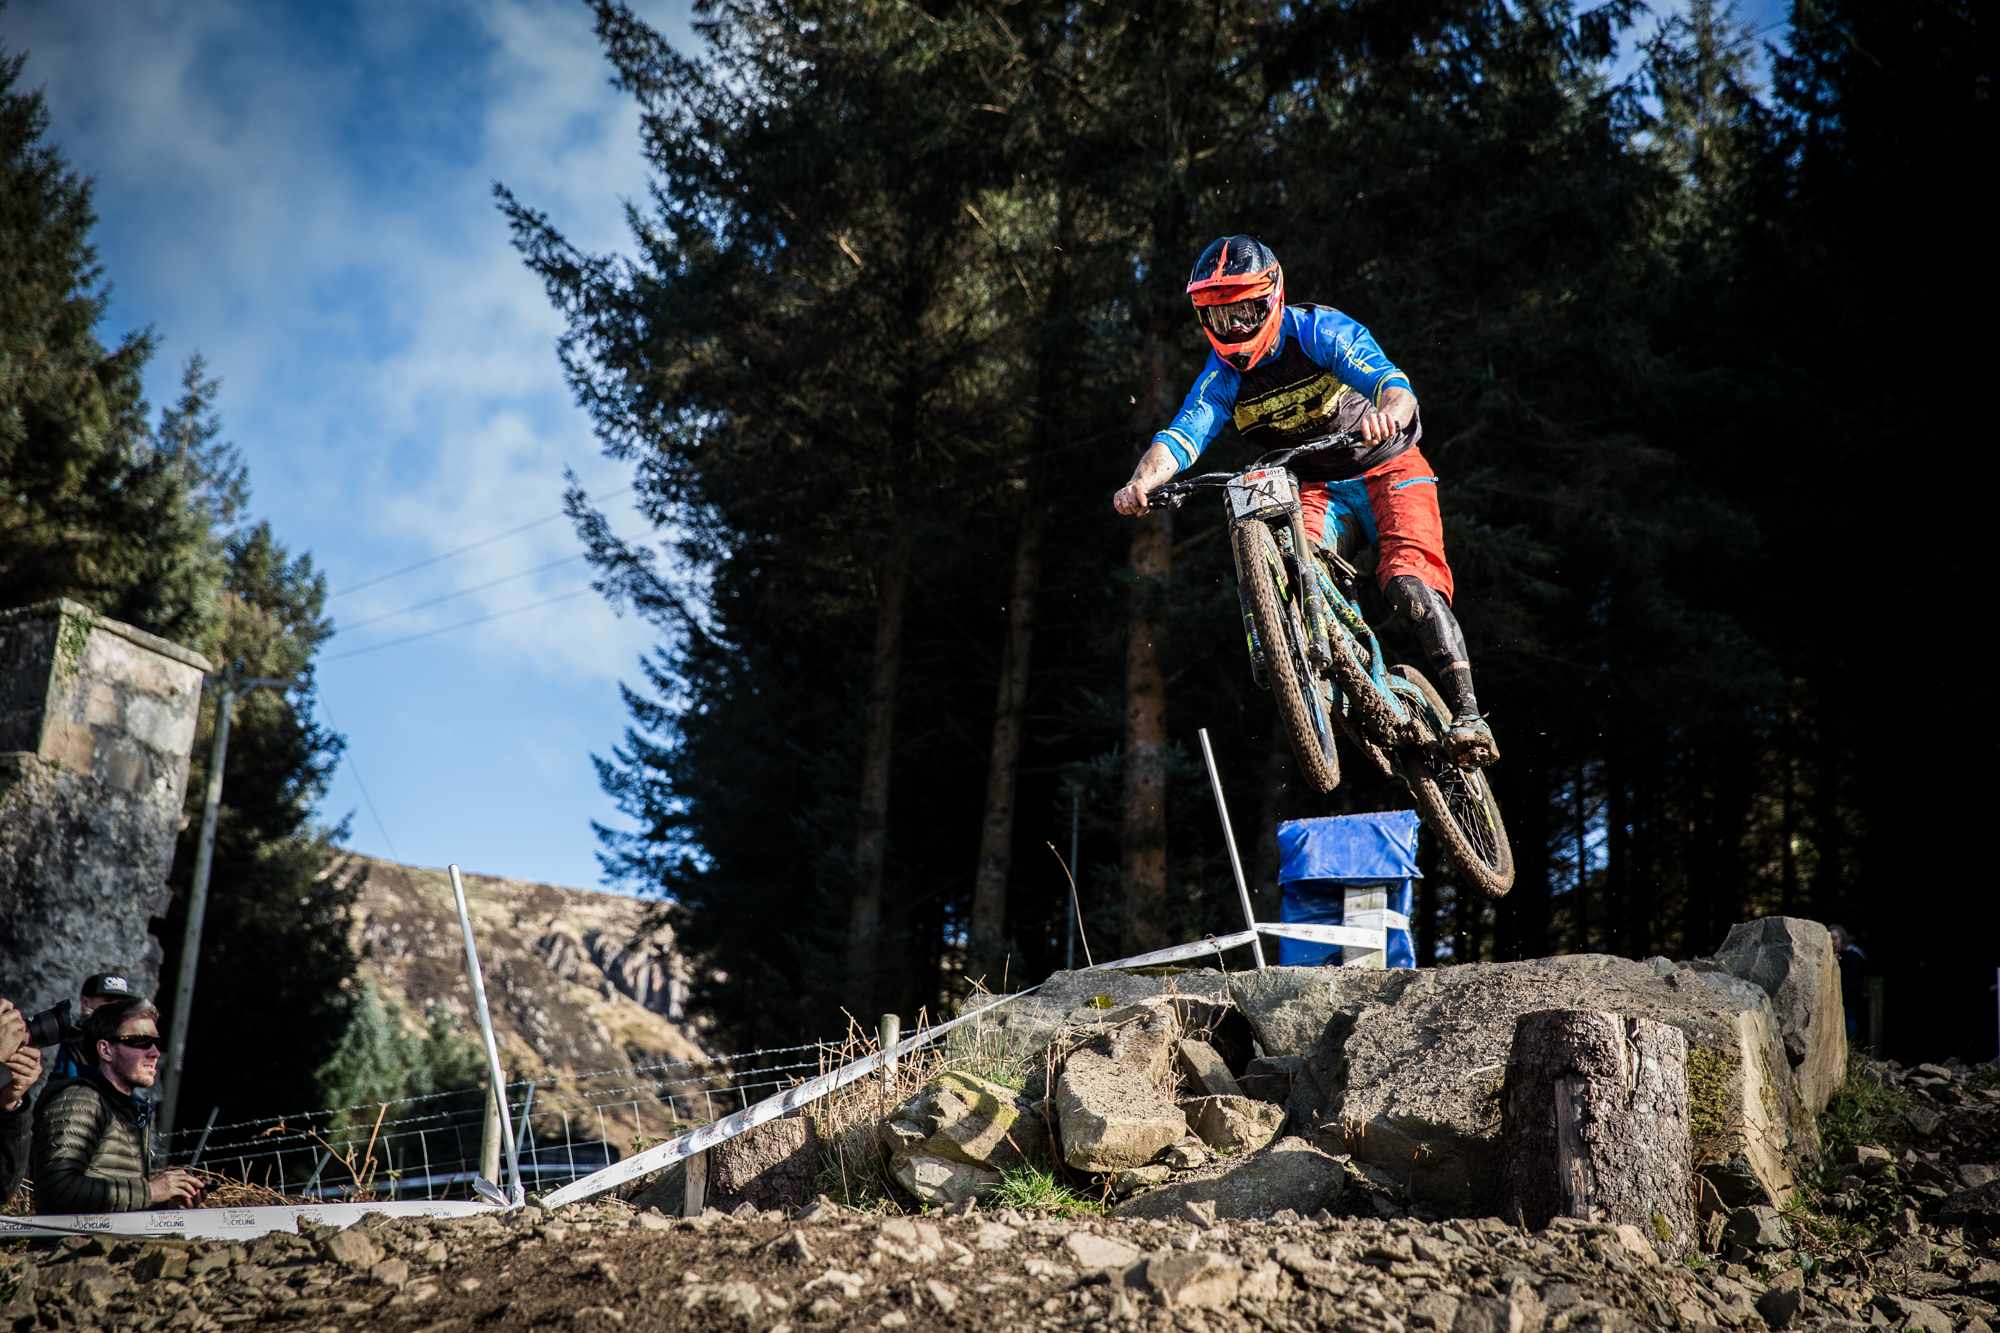 Alex Bond riding GT Fury at British Downhill Series race for MBUK team